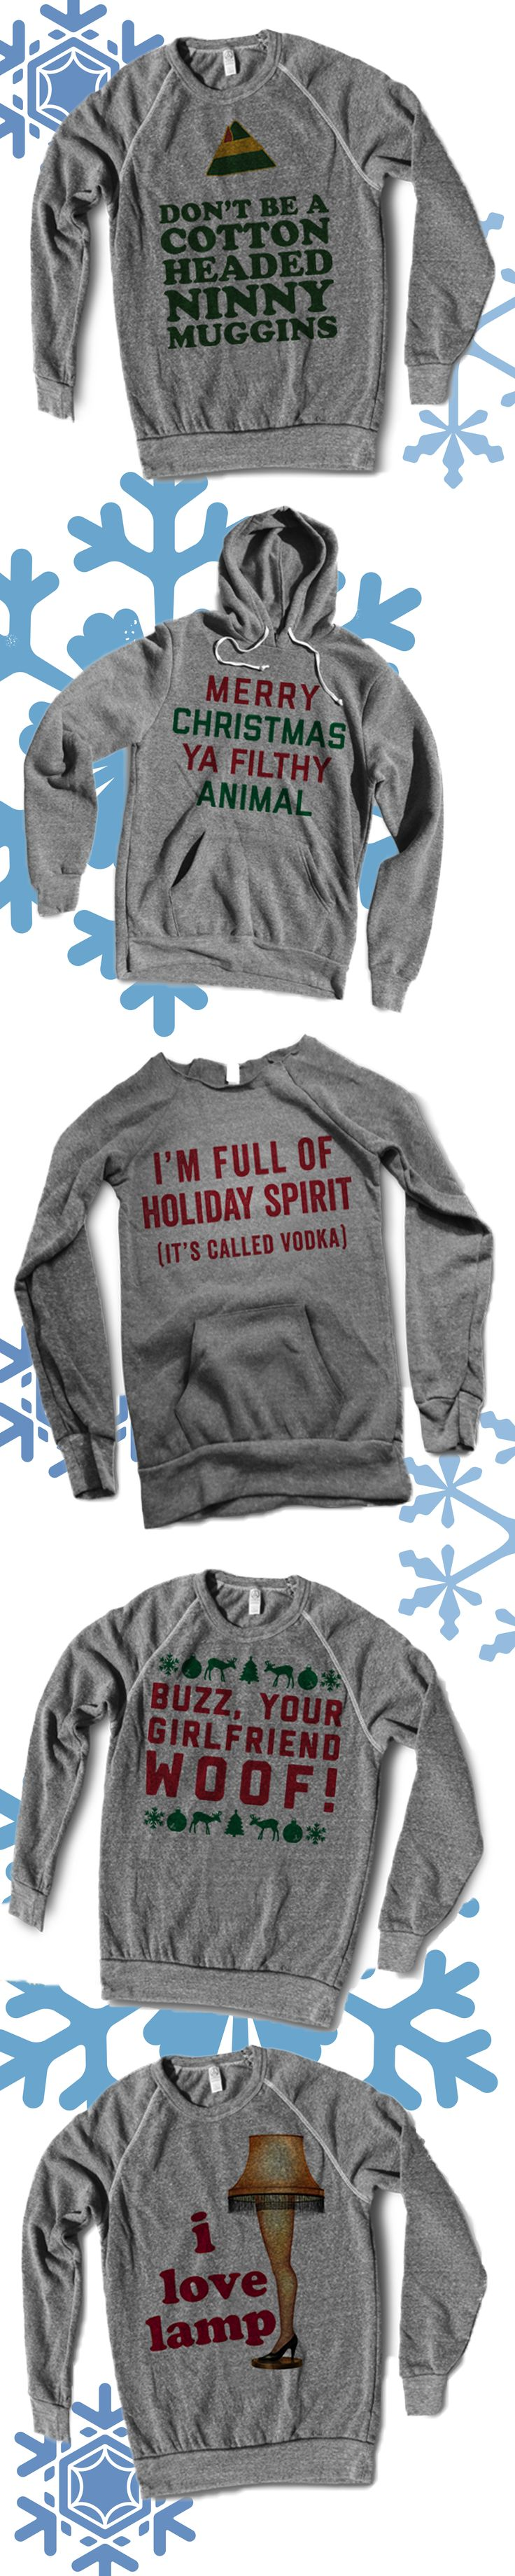 Shop Christmas Sweaters w/ Awesome Best Friends Tees $5 Off w/code: 5DollaHolla